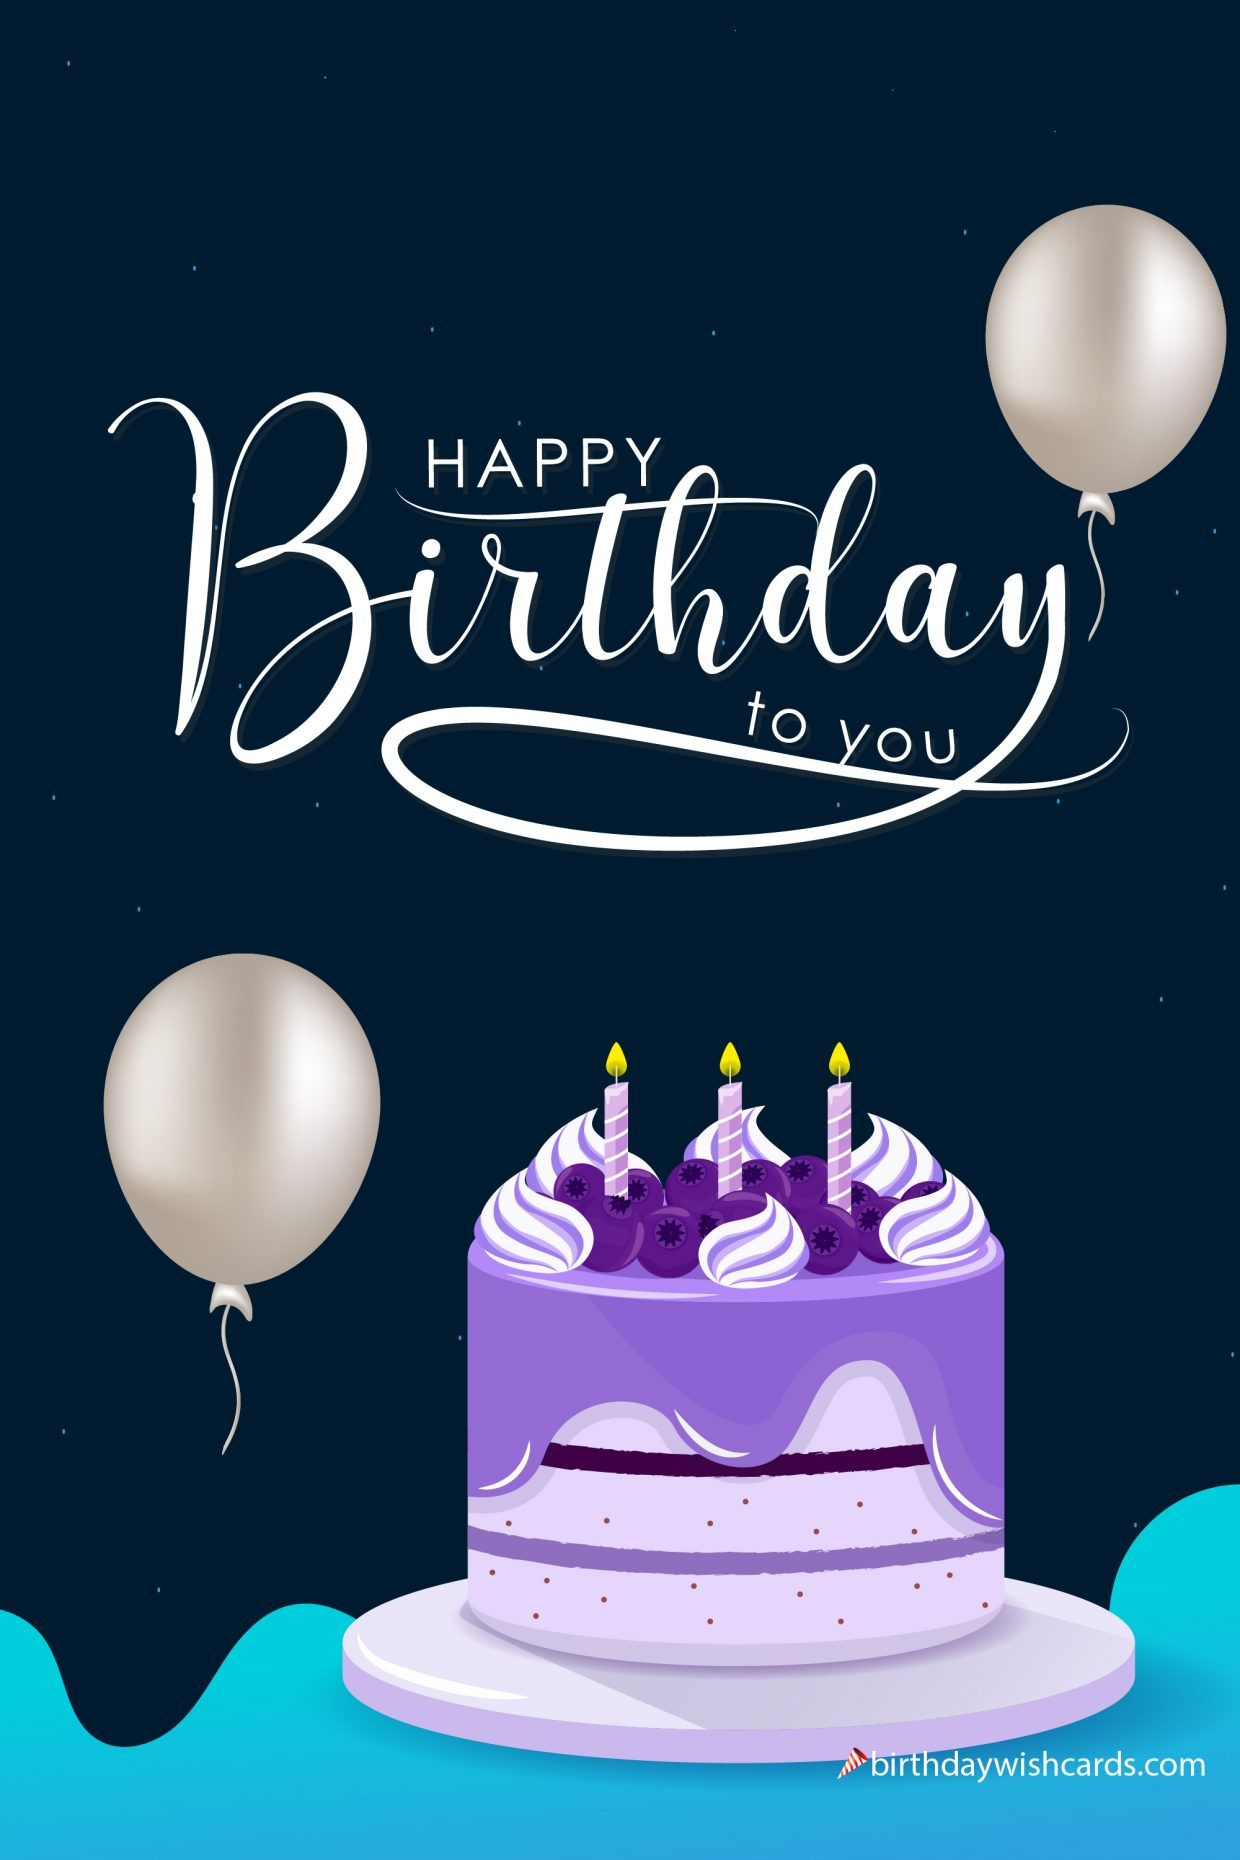 Happy Birthday To You Image For Daughter Birthday Wish Cards Happy Birthday Cupcakes Happy Birthday To You Free Happy Birthday Cards